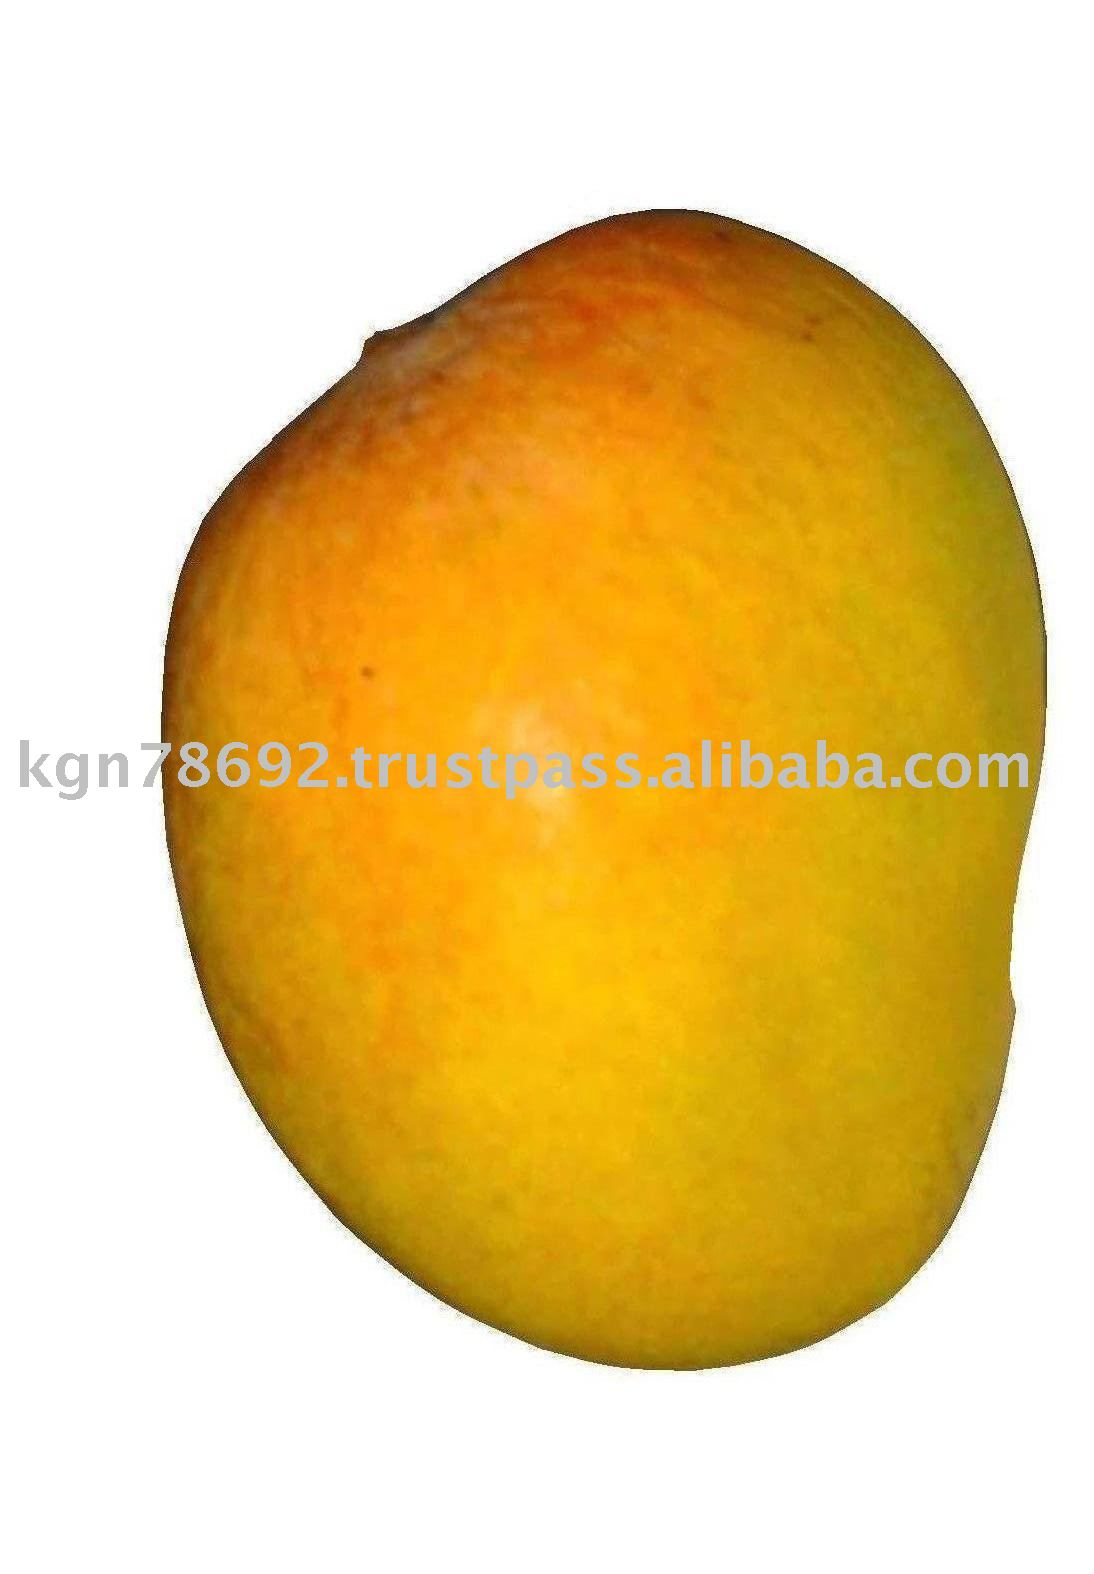 FRESH MANGO FRUITS